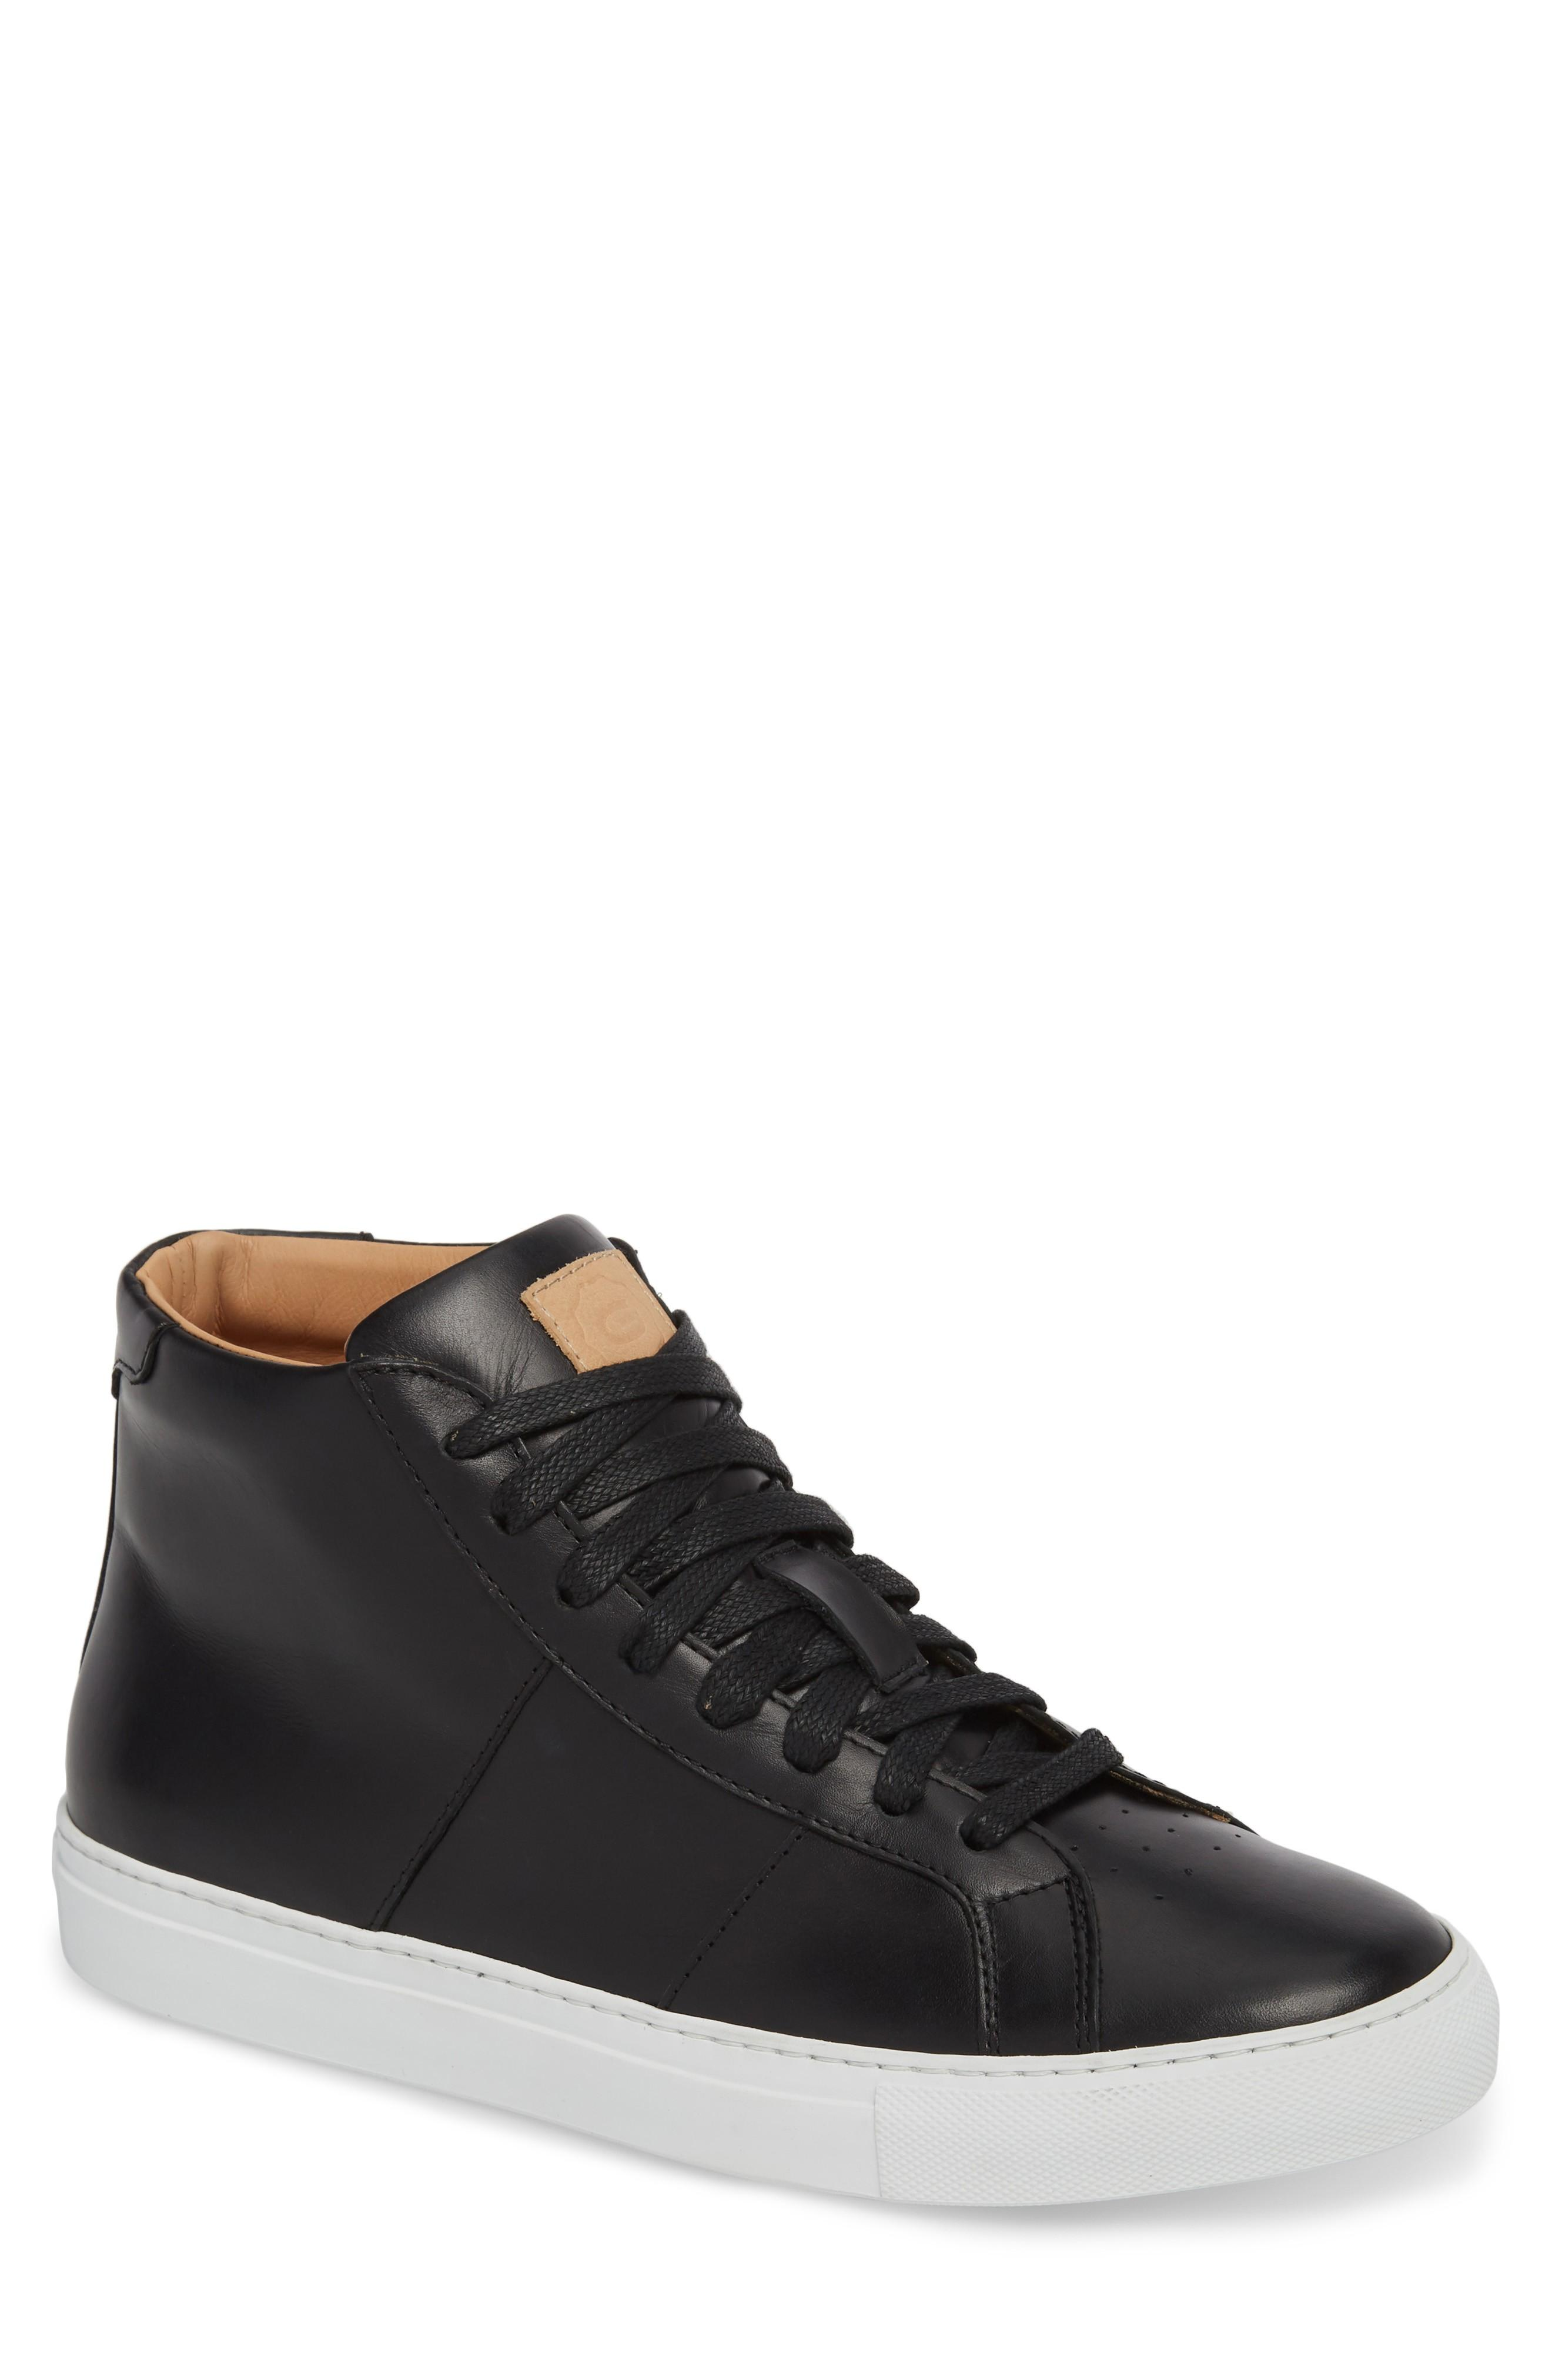 Greats Royale High Top Sneaker In Black Leather